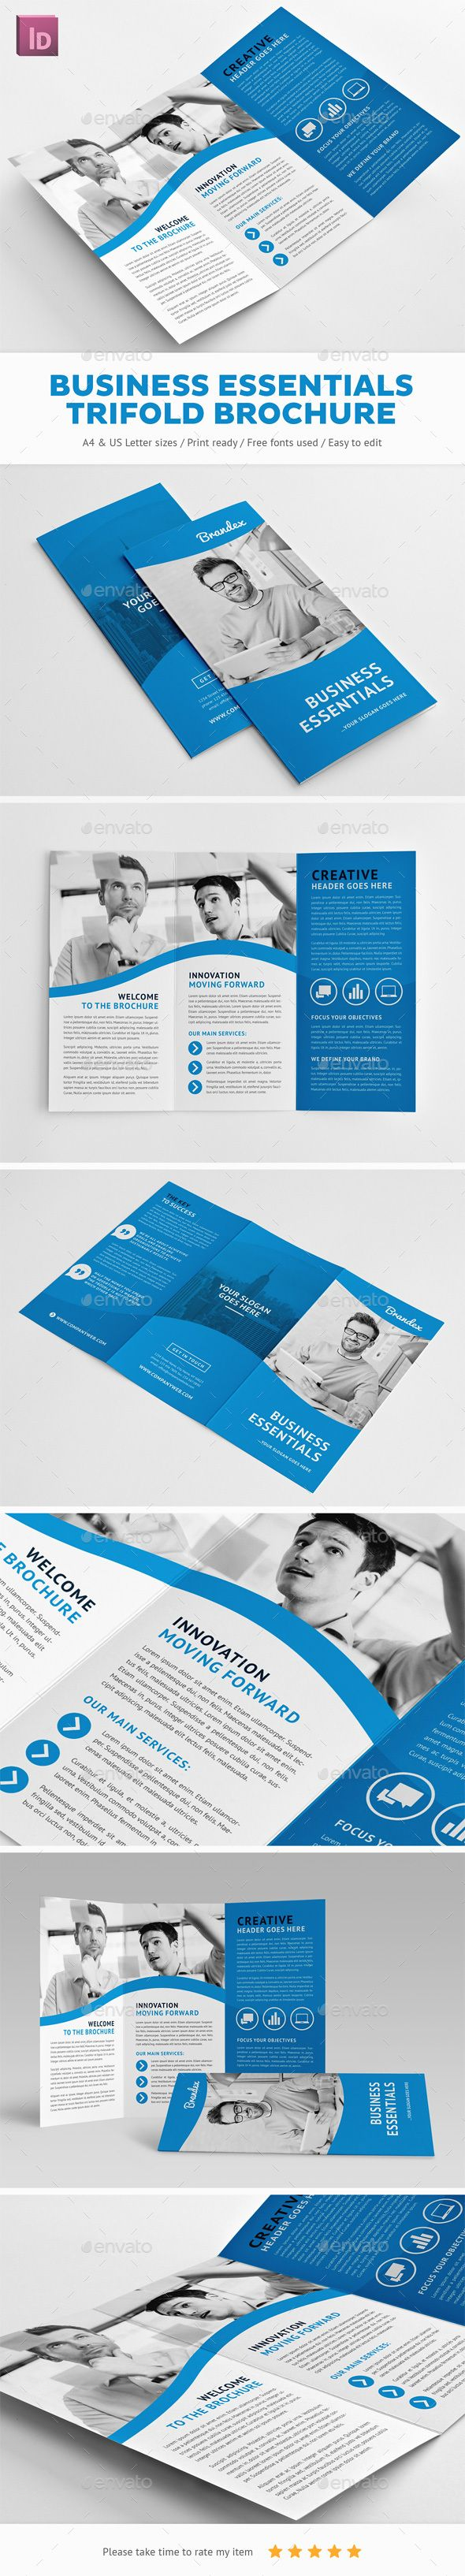 Business Essentials Trifold Brochure - Corporate Brochures